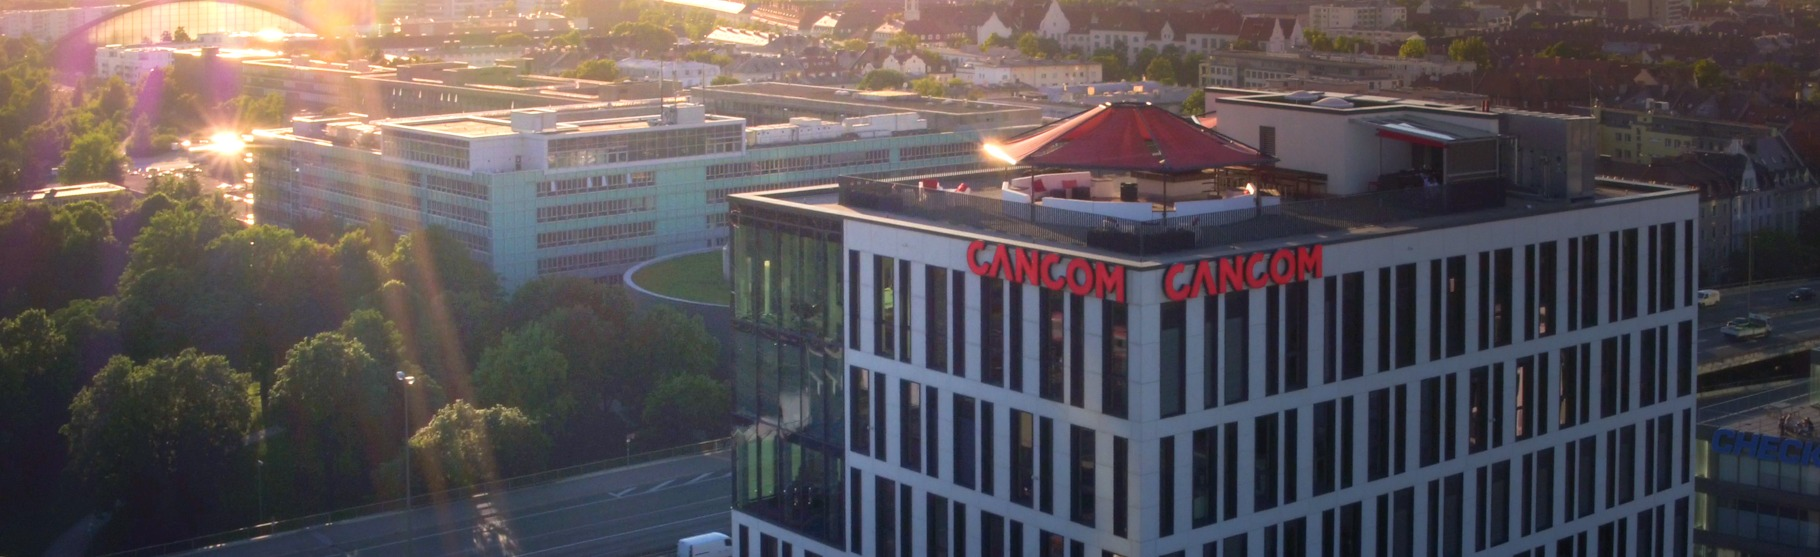 CANCOM in the UK: The Start of Something New